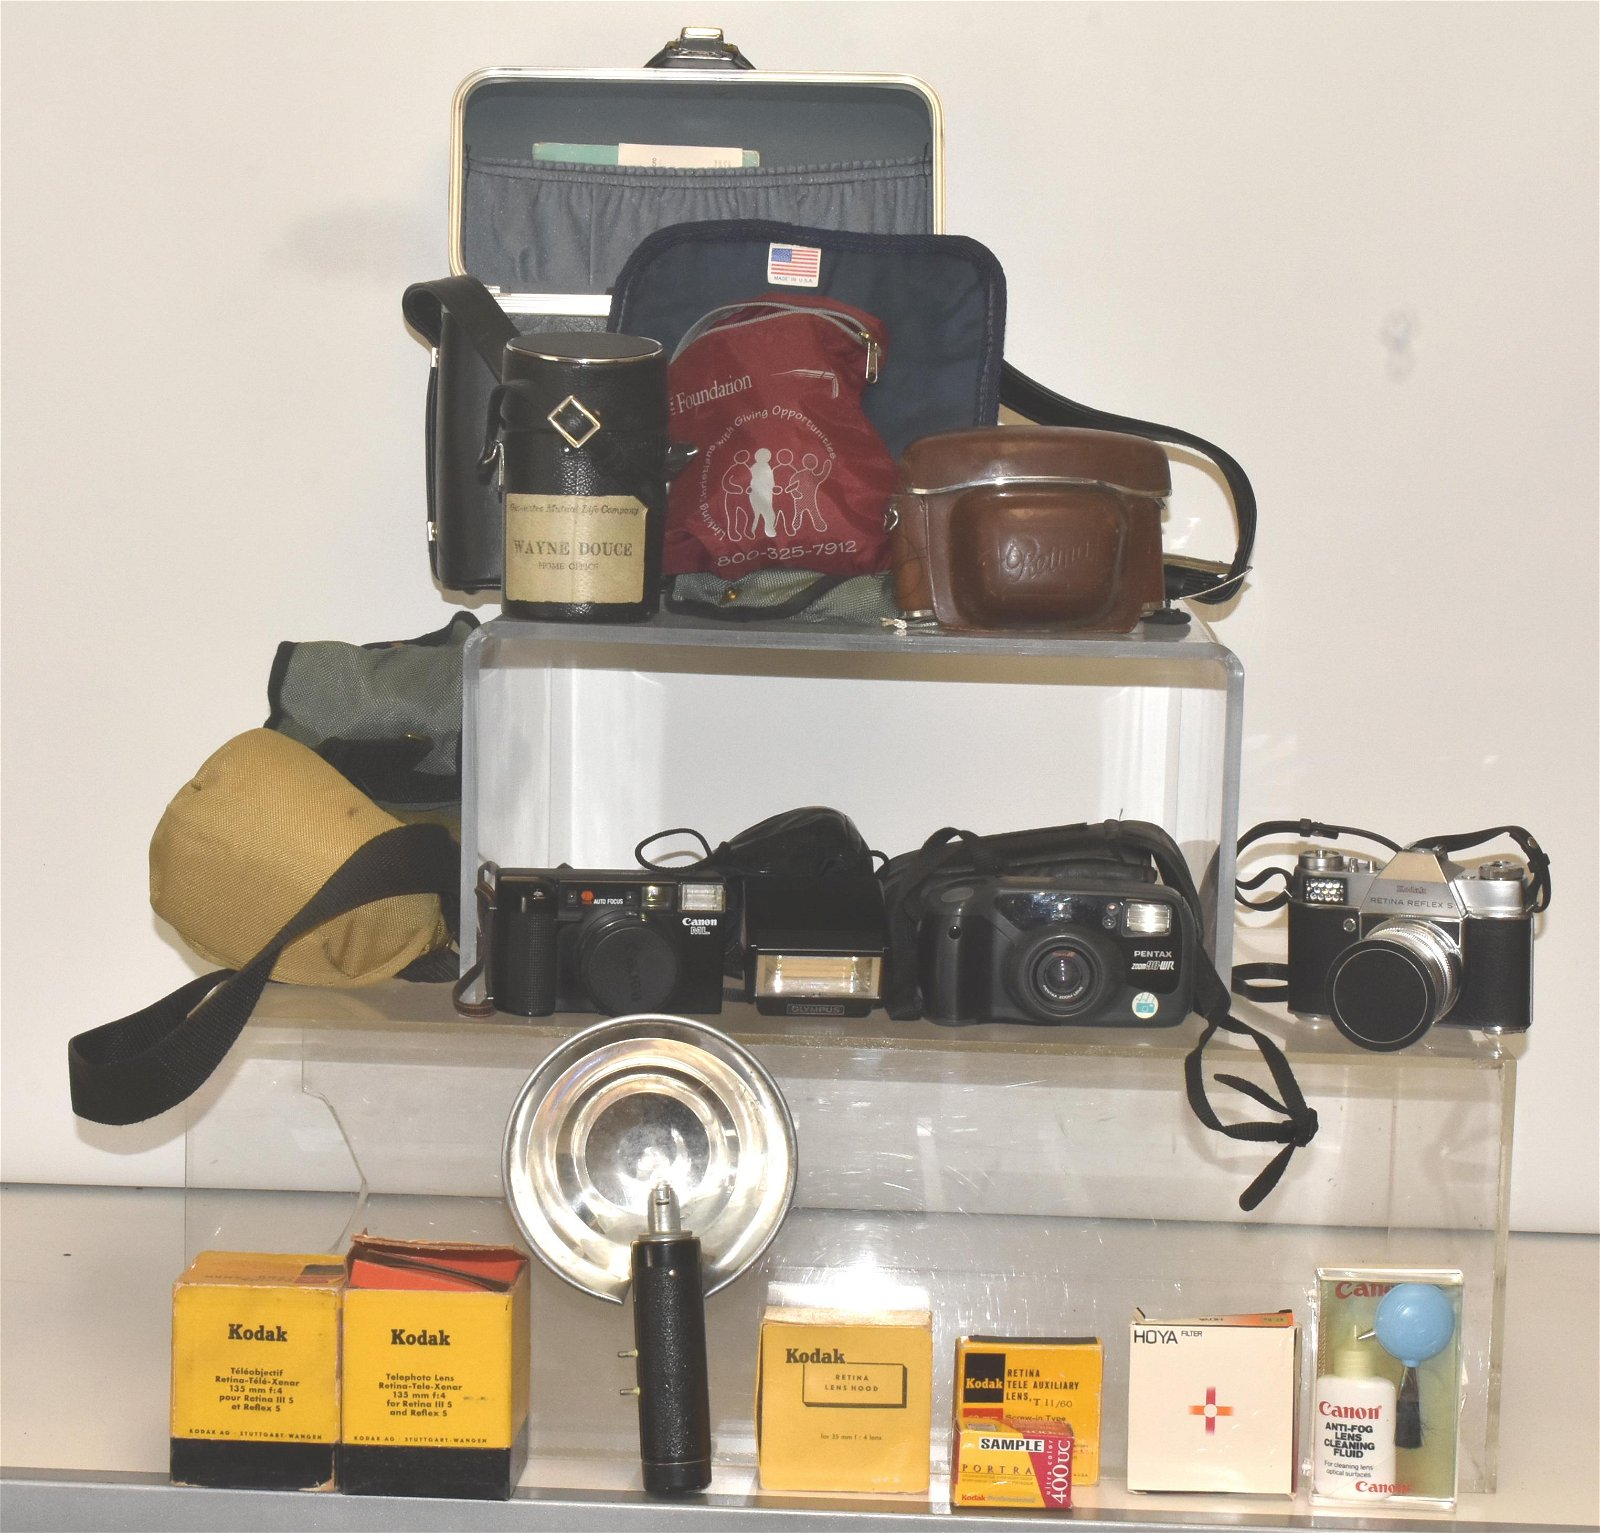 35mm Cameras and Accessories